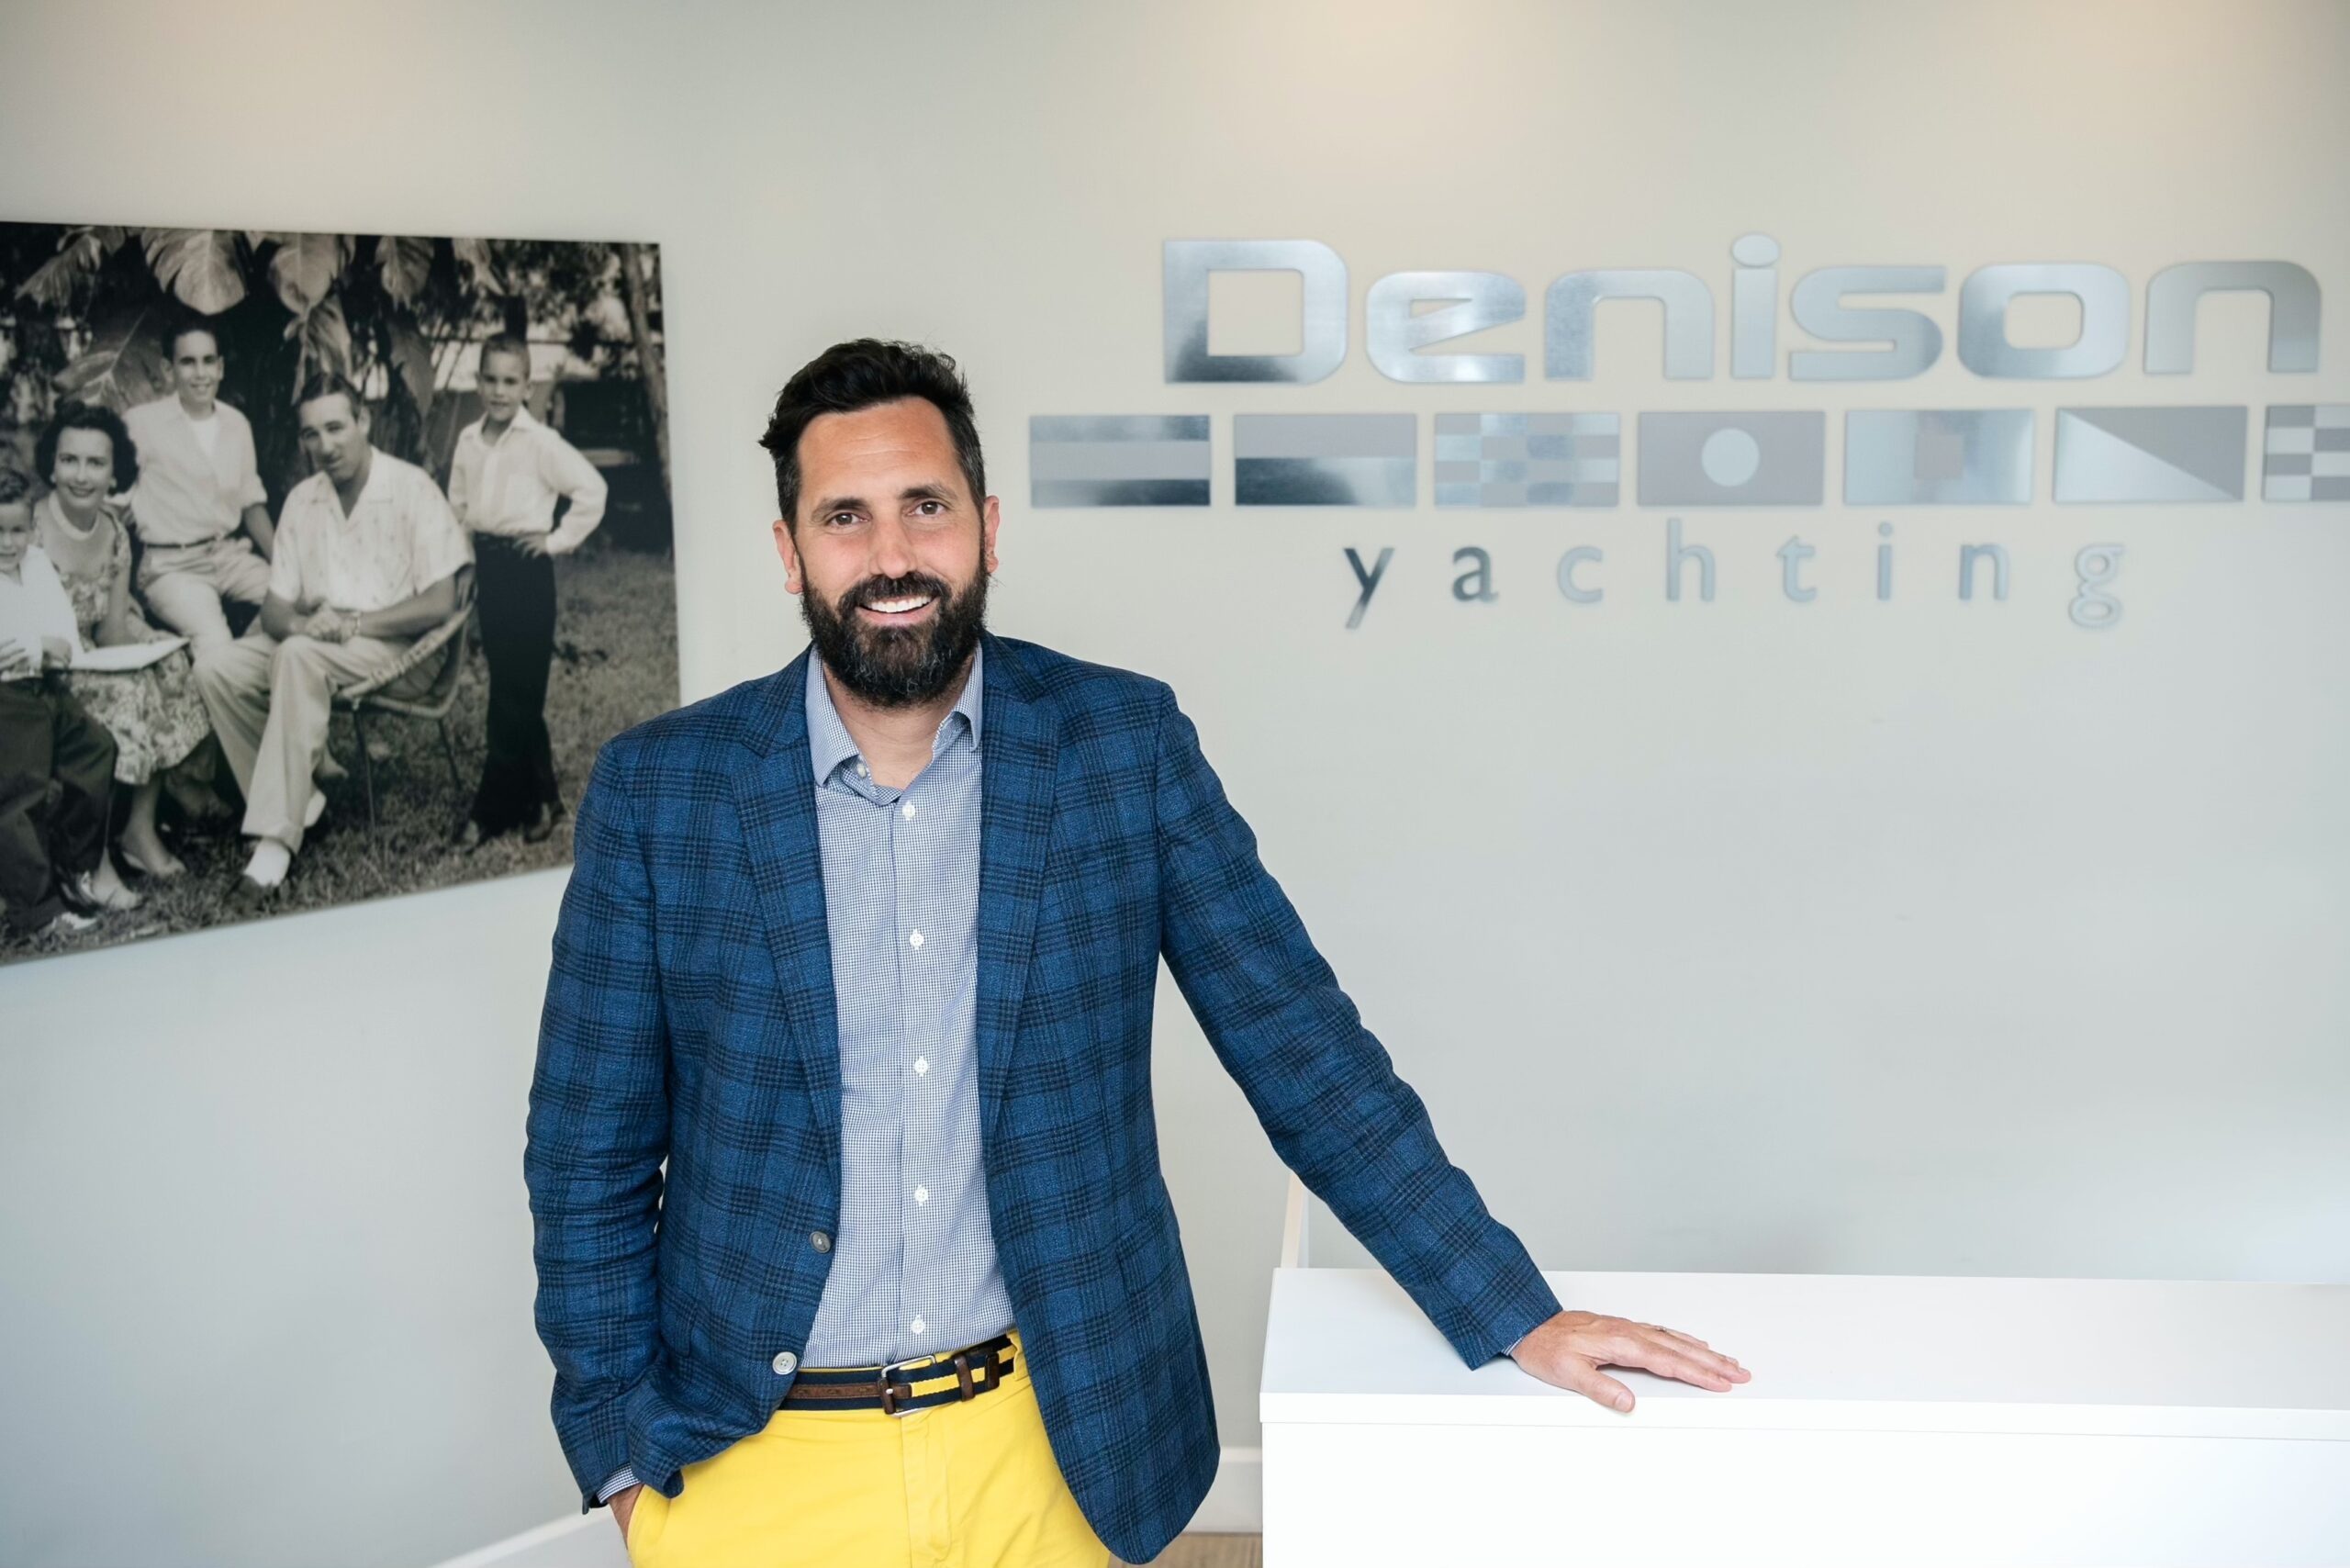 Bob Denison in front of Denison Yachting sign